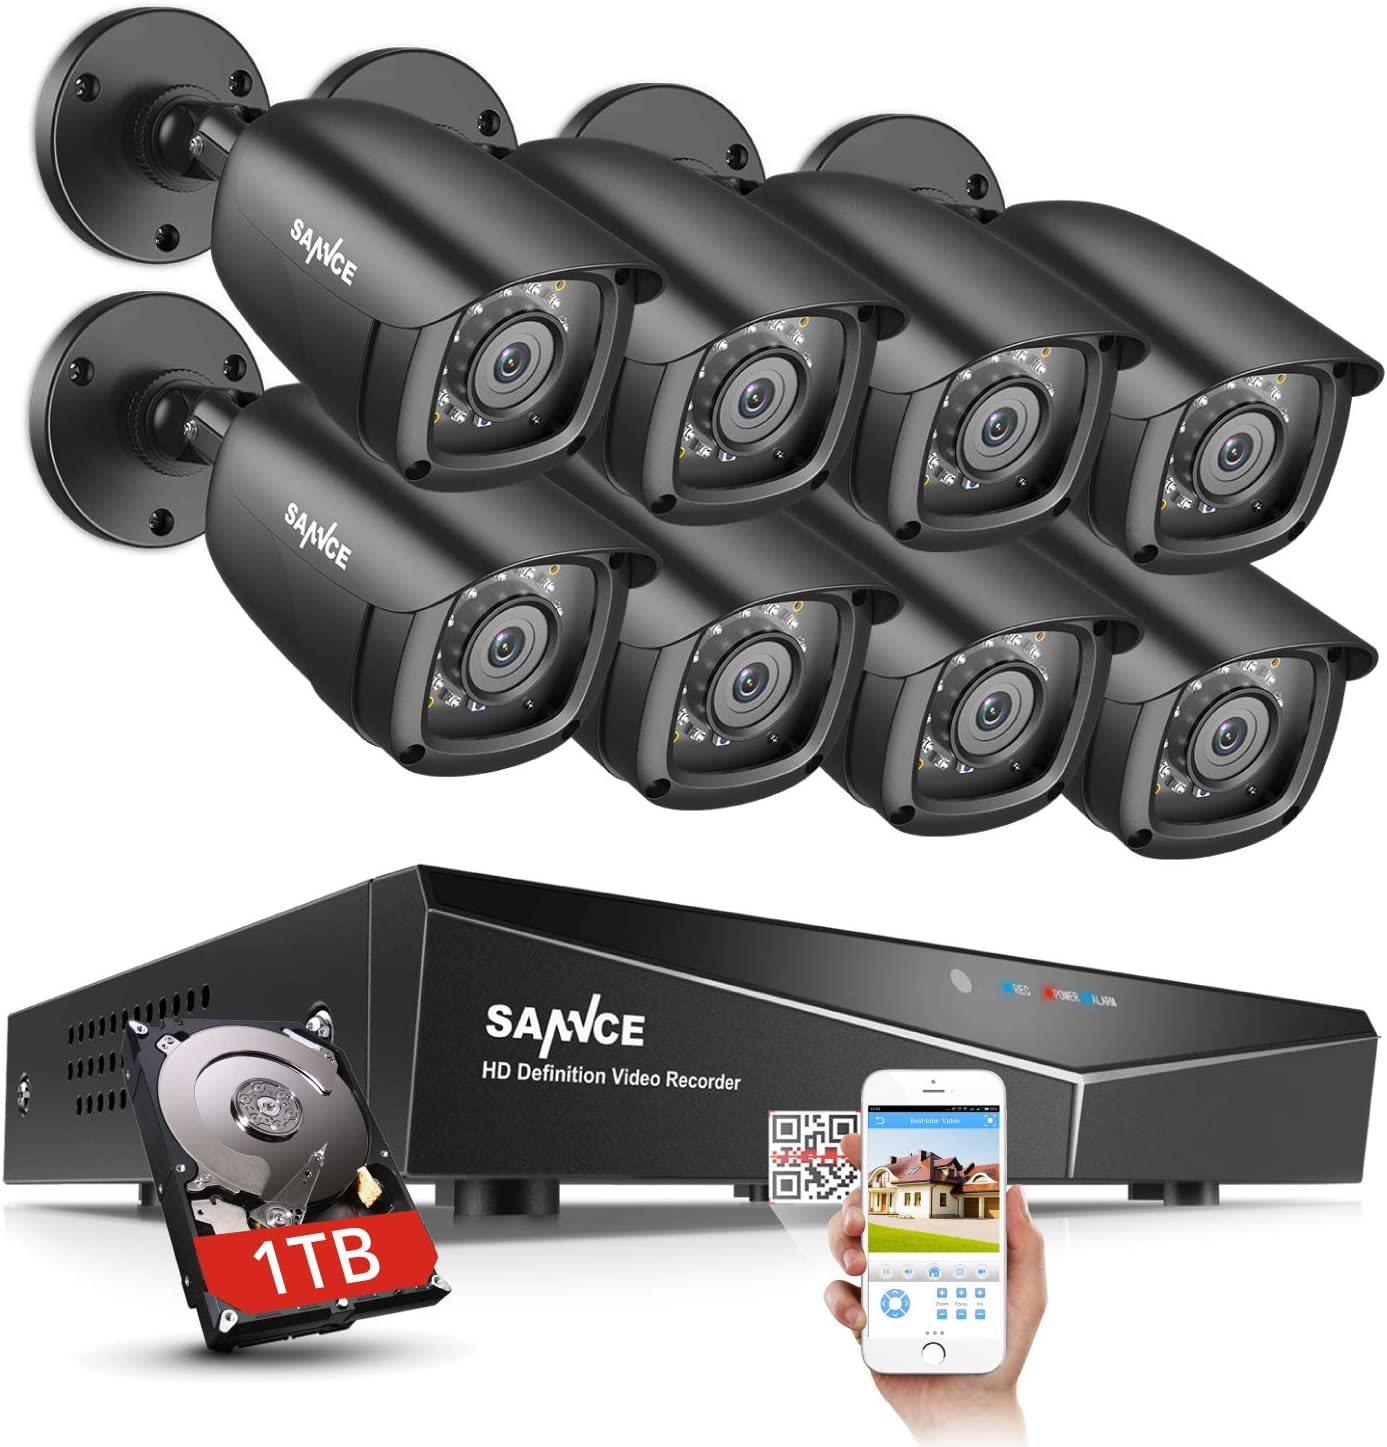 SANNCE 8CH CCTV 1080N Security Surveillance System for Home with 8x720p HD IP66 Weatherproof Security Cameras and 1TB Hard Drive Included,Email Alarm, Phone Access,Motion Detection,Night Vision